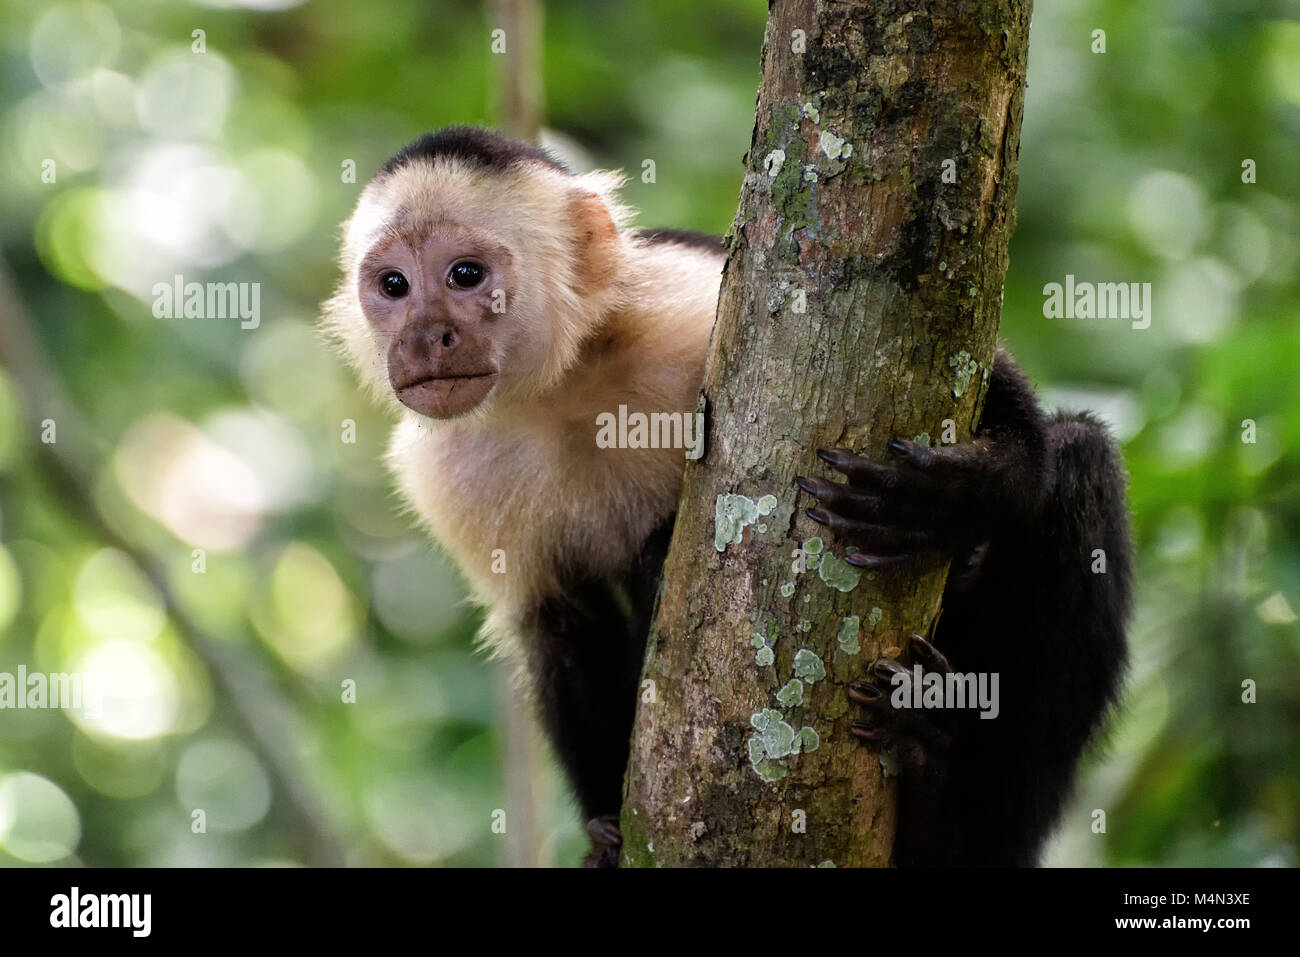 Cebus monkey in a tree in the jungle in central america Stock Photo